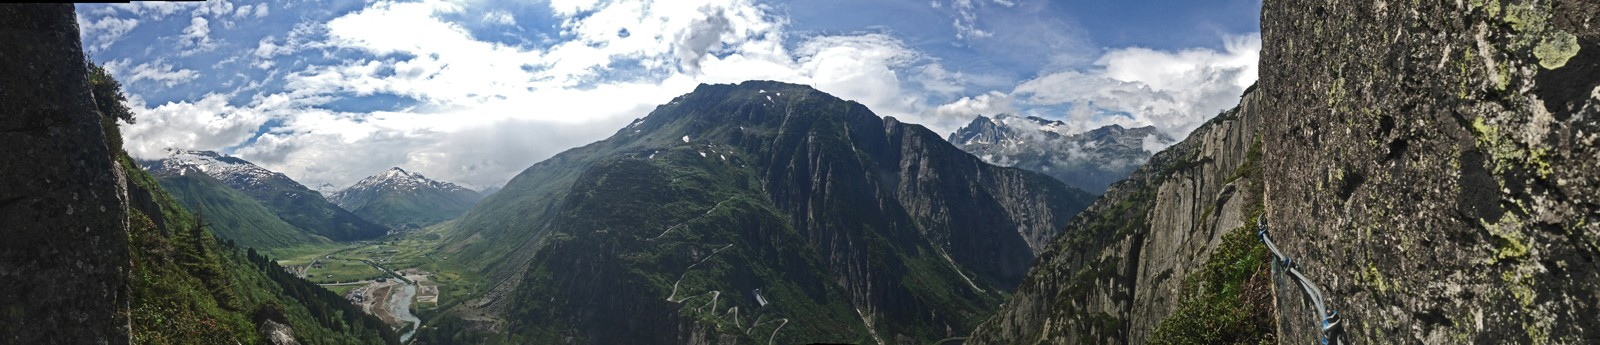 The view of the Swiss Alps from the Via Ferrata Diavolo.